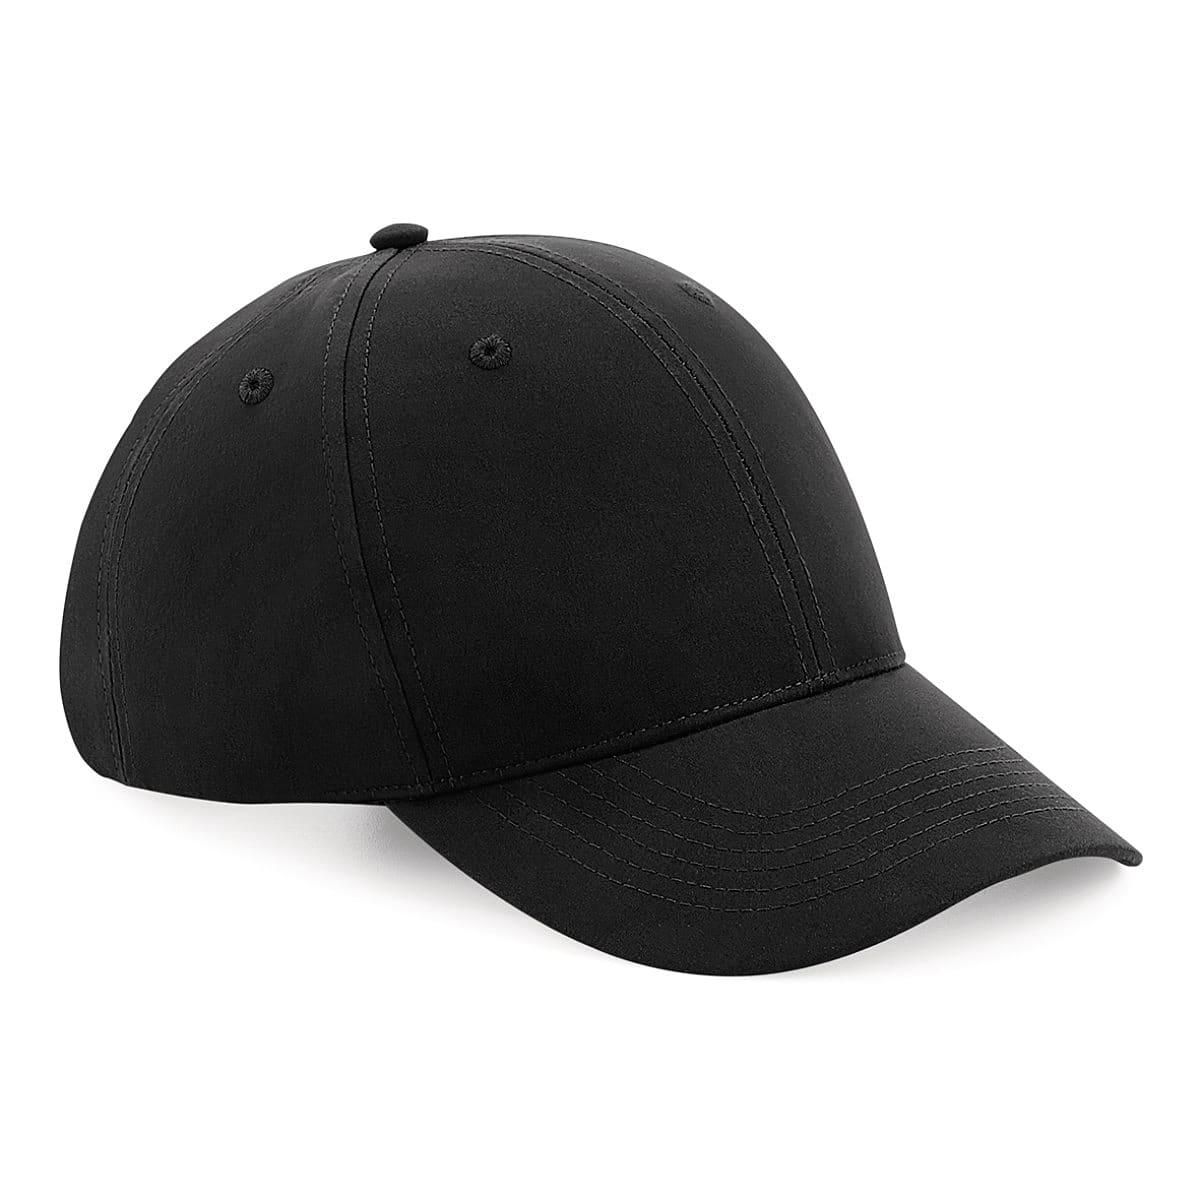 Beechfield Recycled Pro-Style Cap in Black (Product Code: B70)